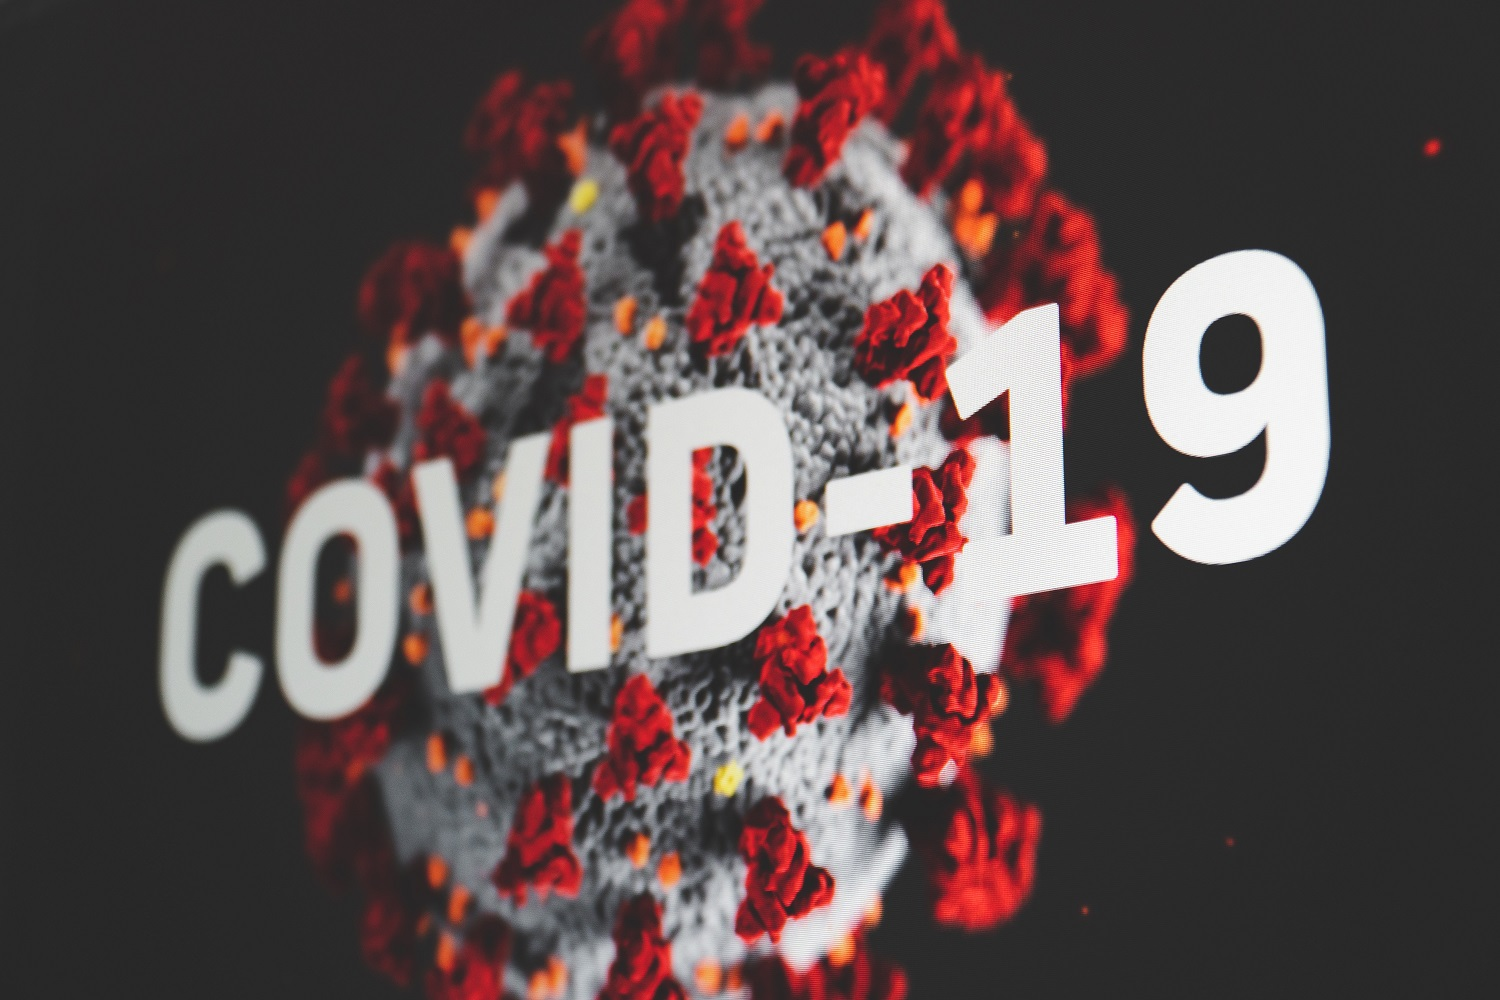 Abstract view of the COVID-19 coronavirus red bloom with white ball.